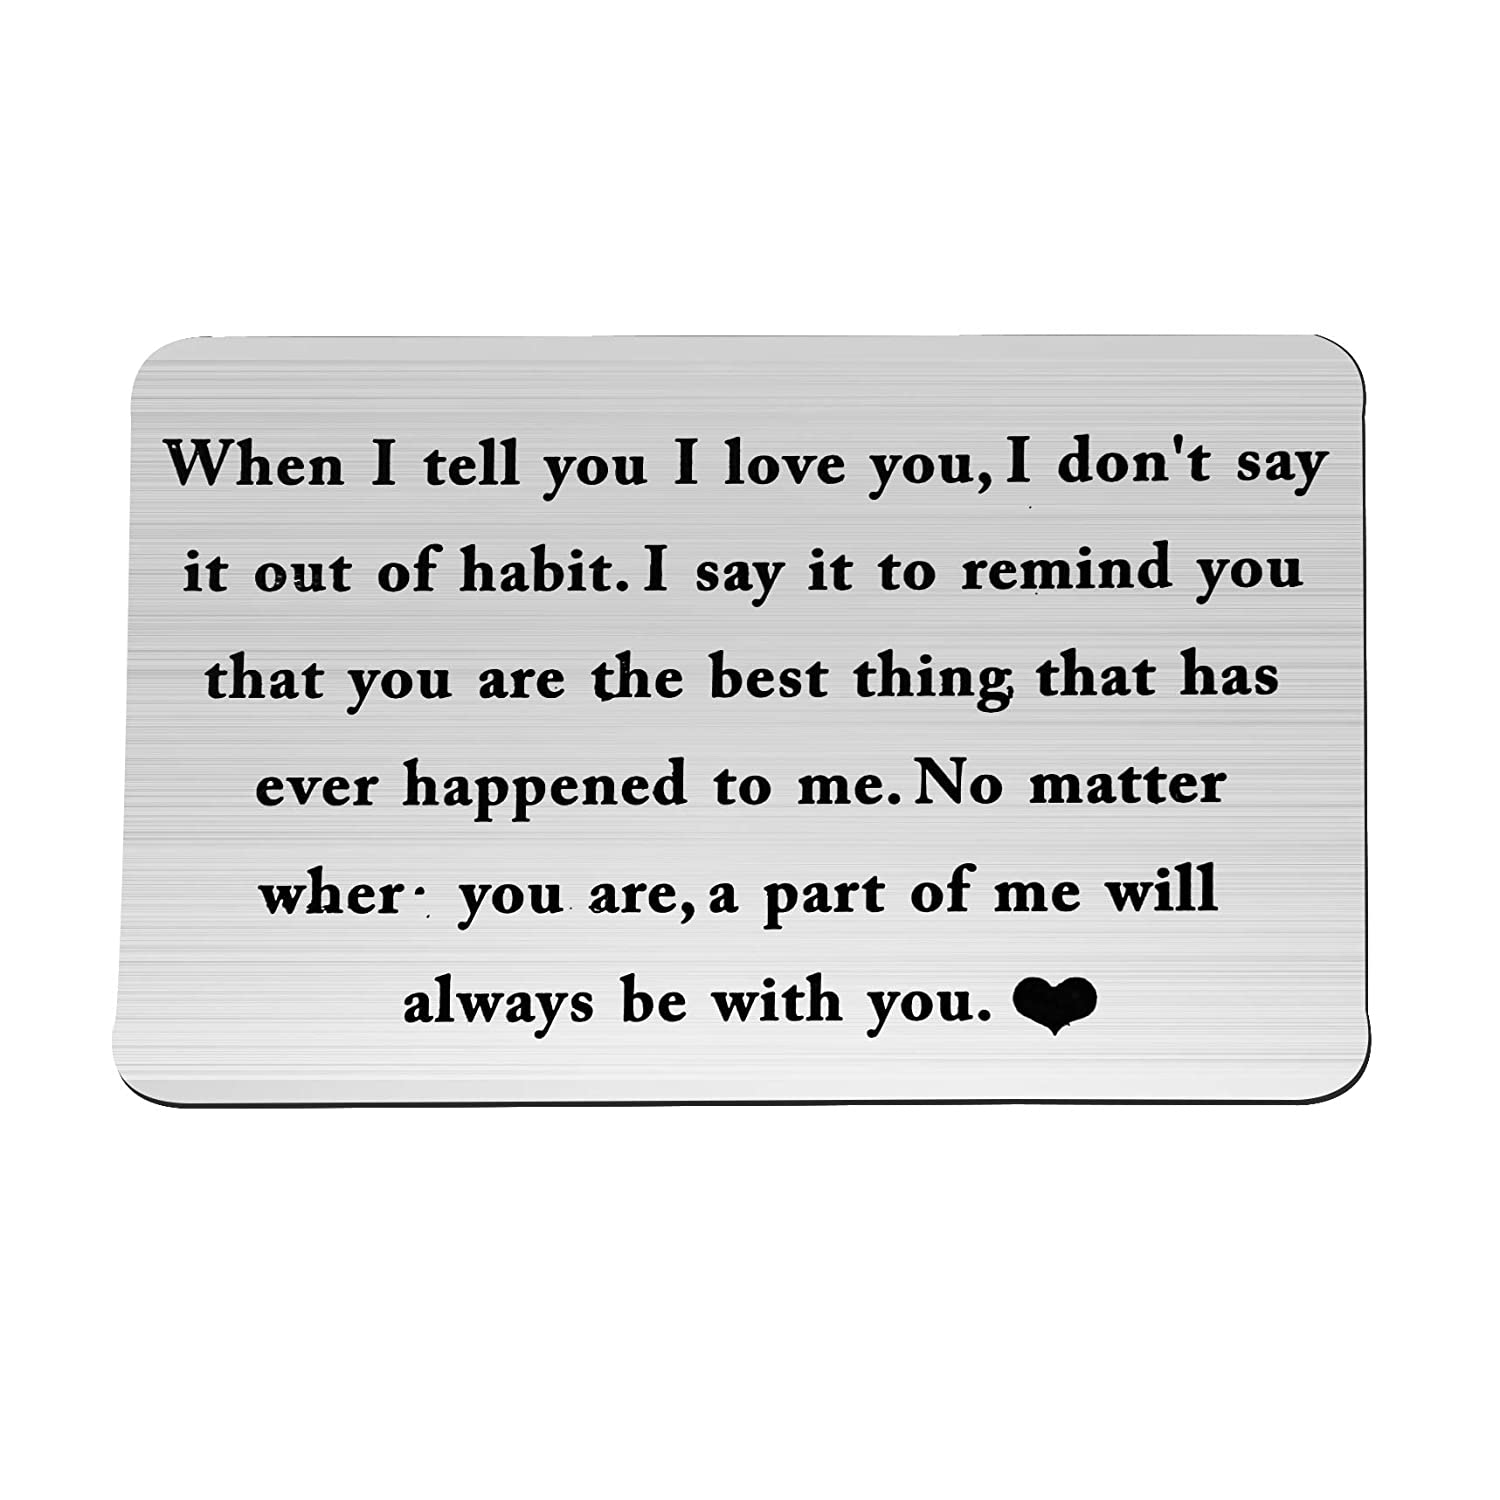 ENSIANTH Wallet Card Insert When I Tell You I Love You Wallet Card Groom's Gift for Him B07GYXW7XT_US